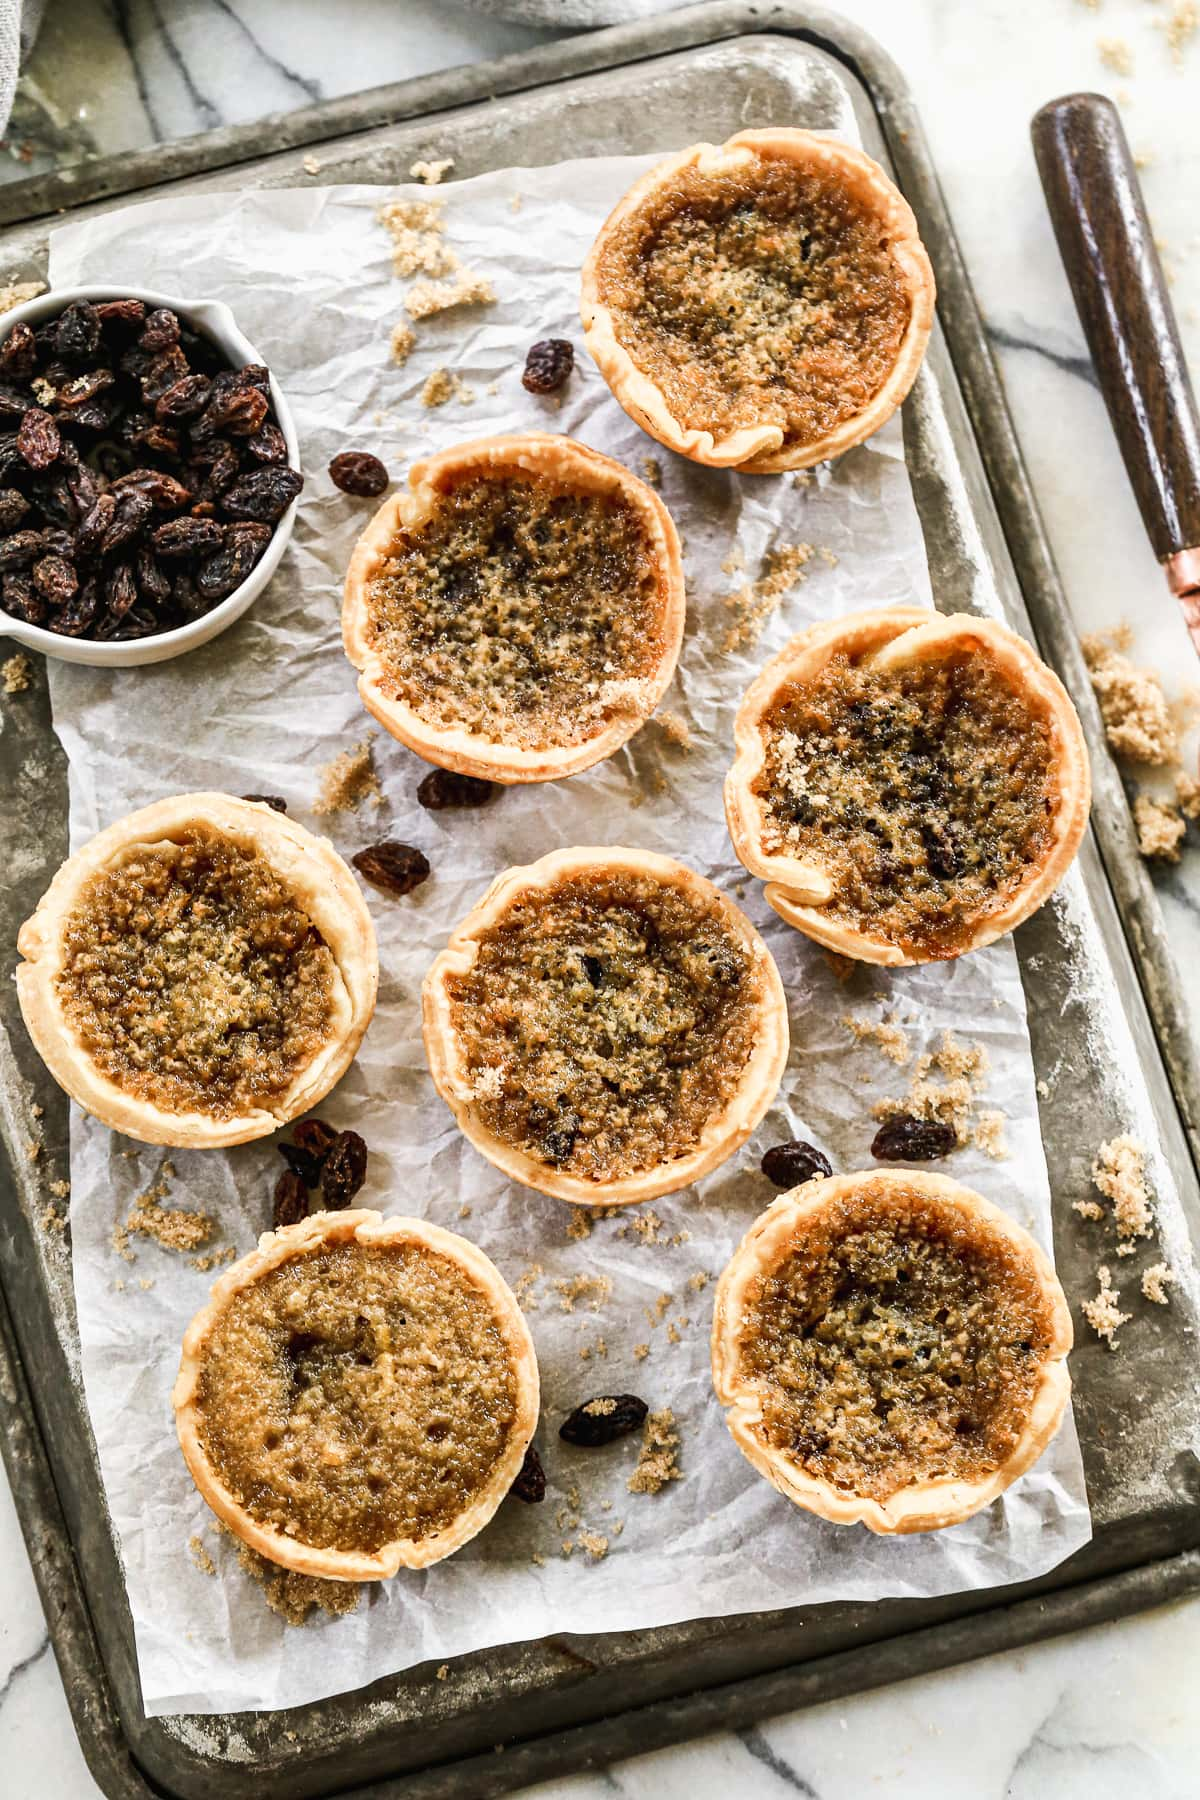 Butter Tarts - Mini tarts baked in muffin tin